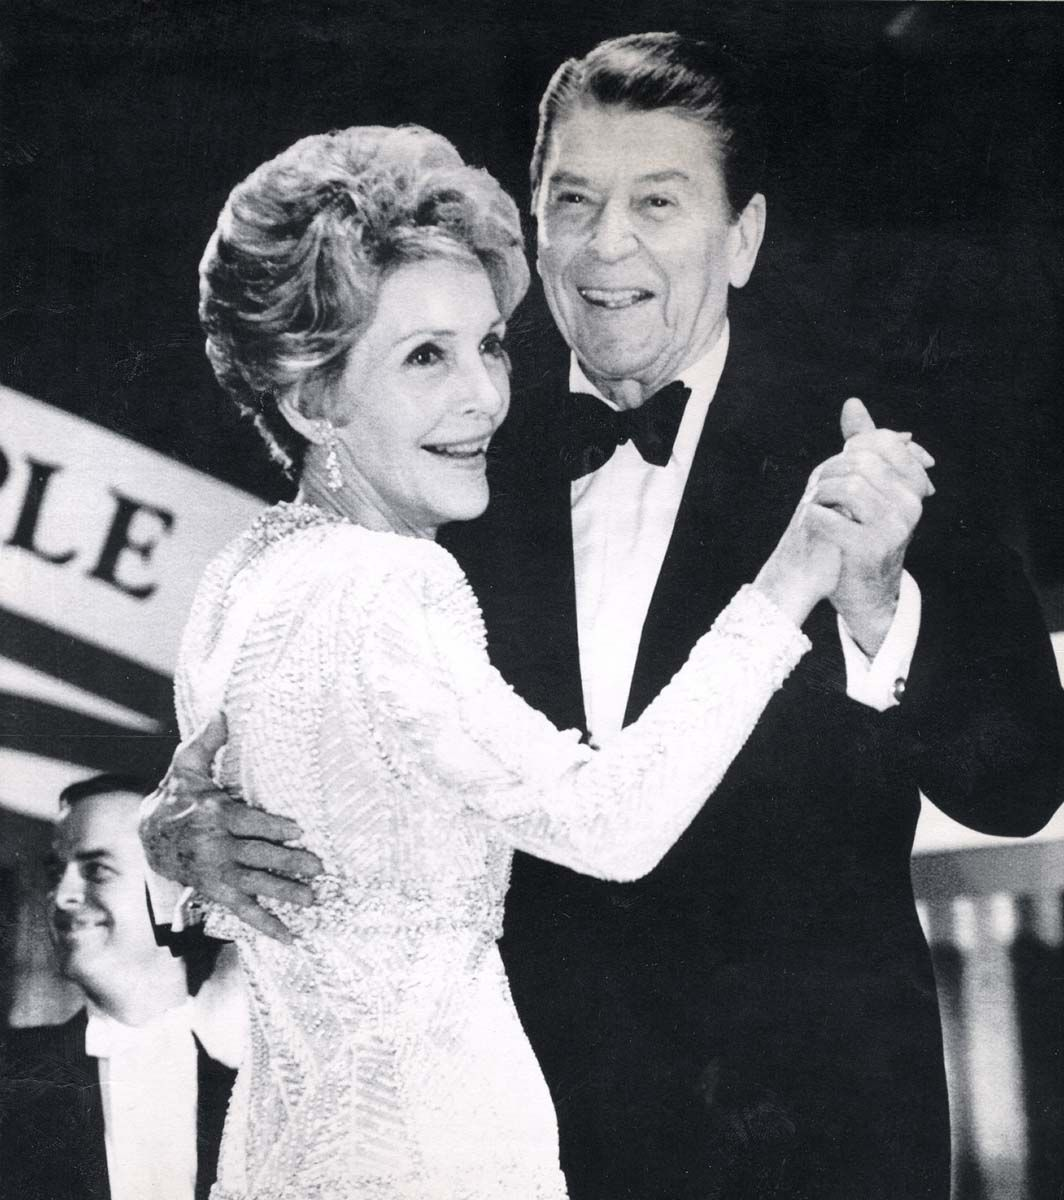 ronald reagan inauguration president reagan and mrs reagan have ronald reagan inauguration president reagan and mrs reagan have the first dance at the